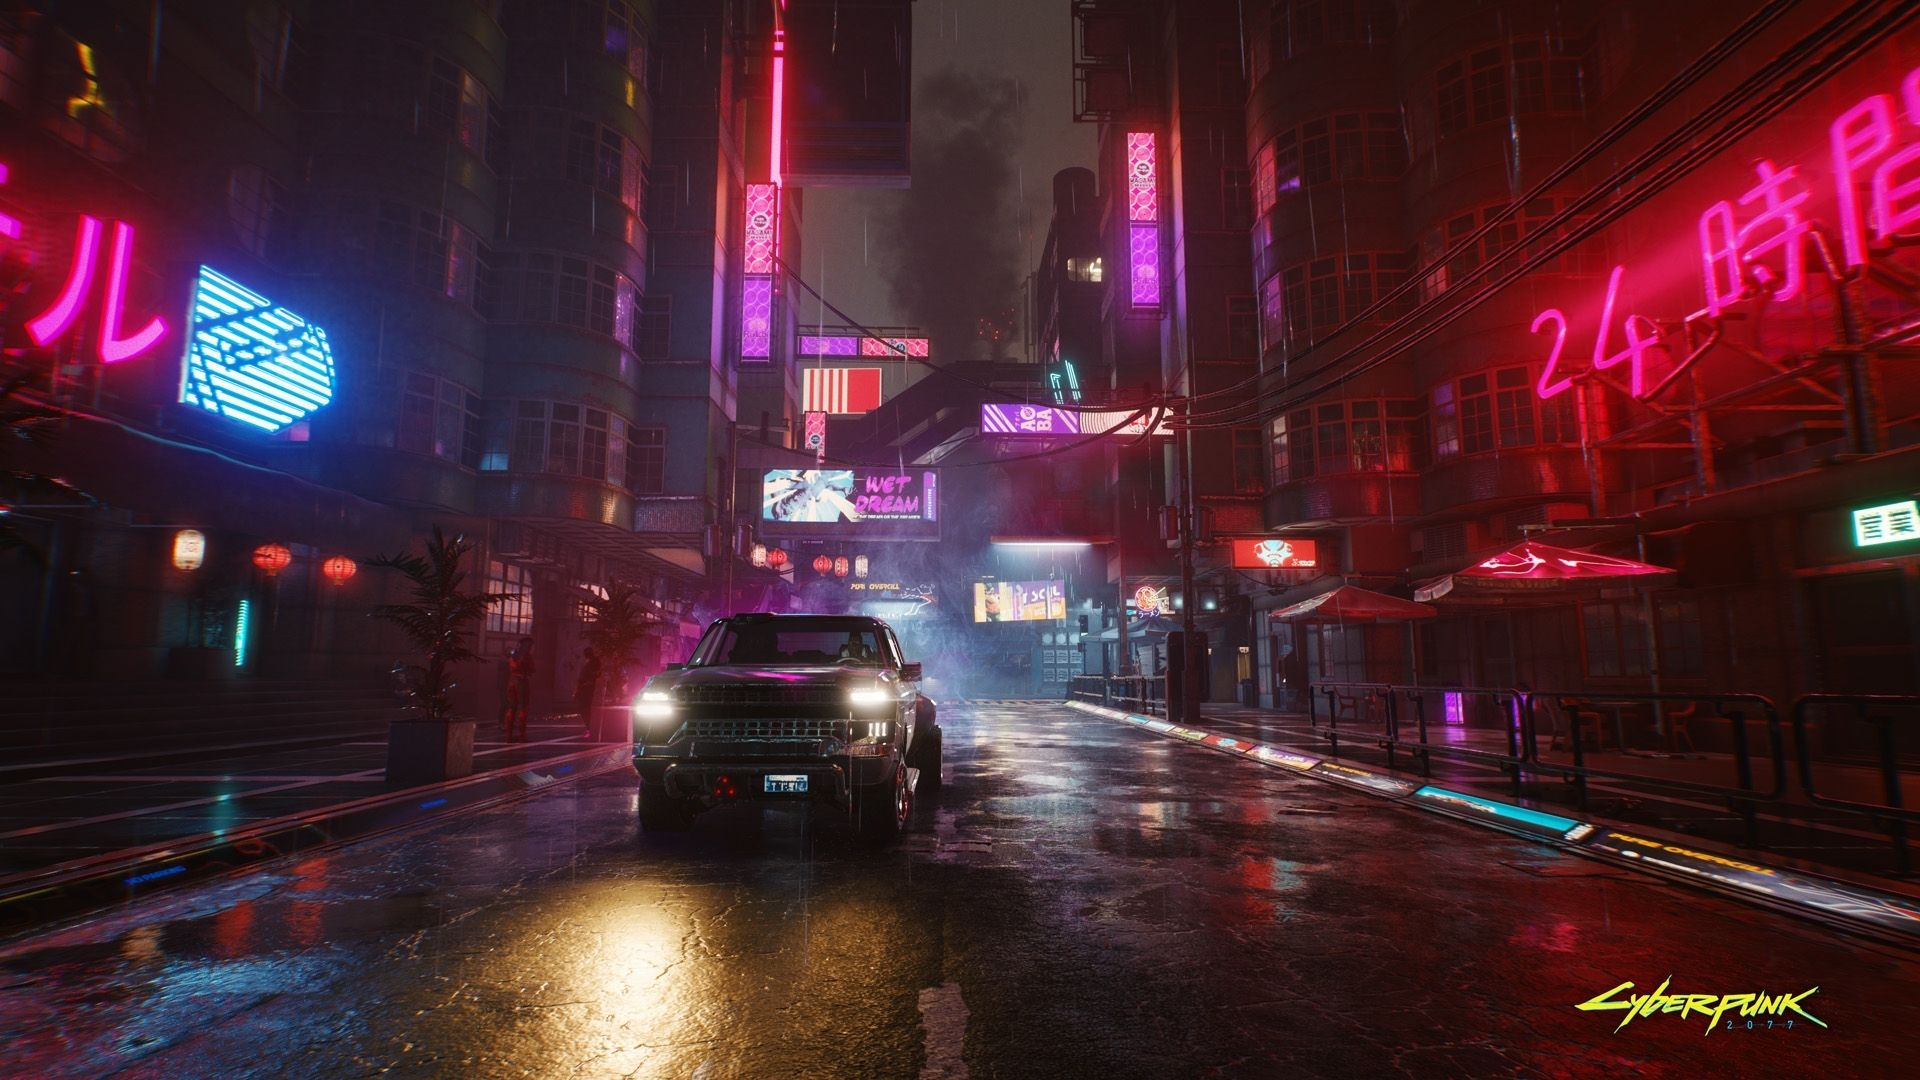 Official Cyberpunk 2077 artwork depicting rain in Night City